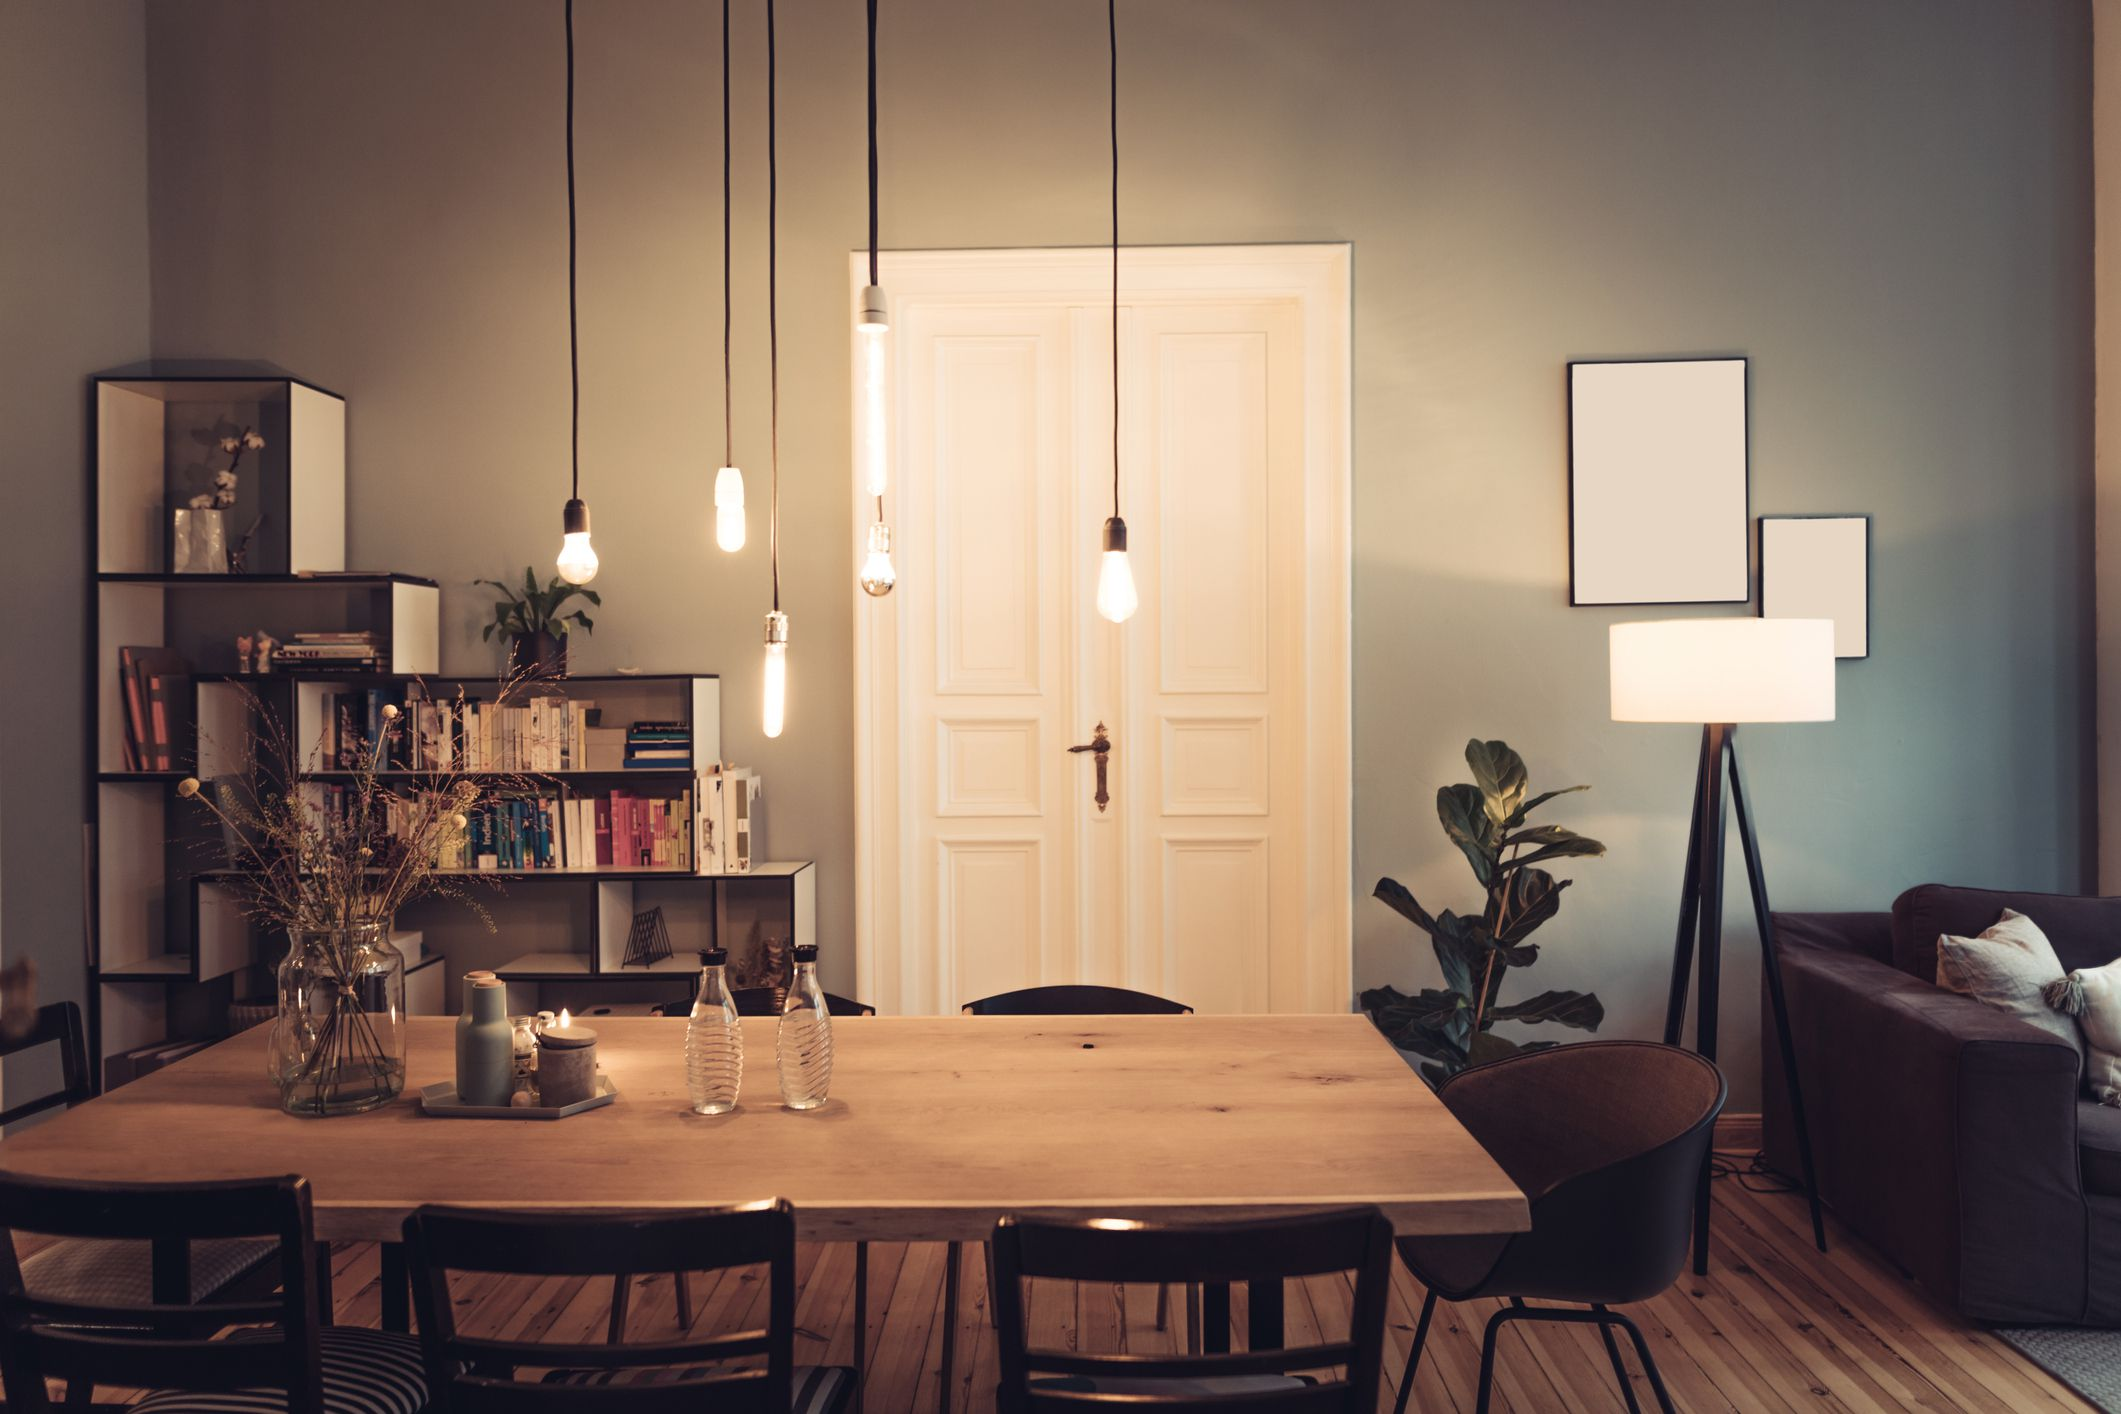 mens office decorating ideas.htm 6 elements of modern masculine room decor  6 elements of modern masculine room decor